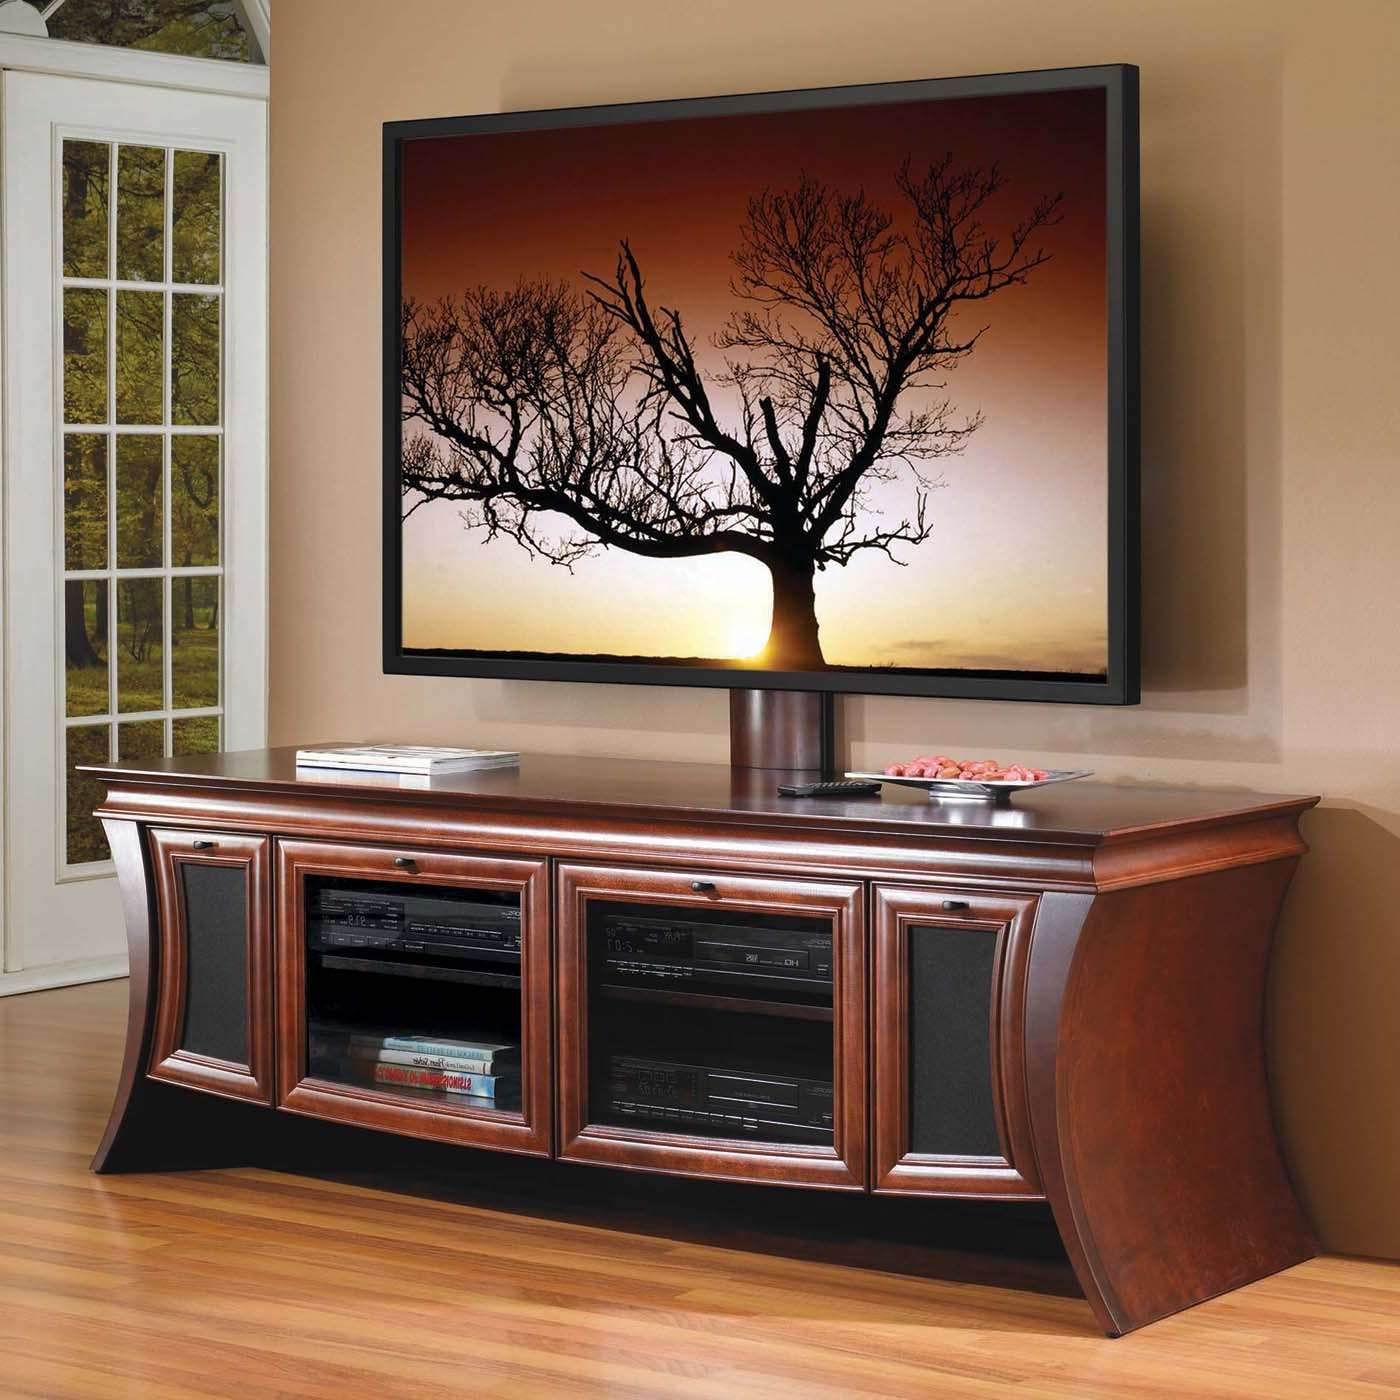 Deluxe Mount Sauder And Mount Mirage Panel Tv Stand As Wells As Regarding Mahogany Tv Cabinets (View 16 of 20)